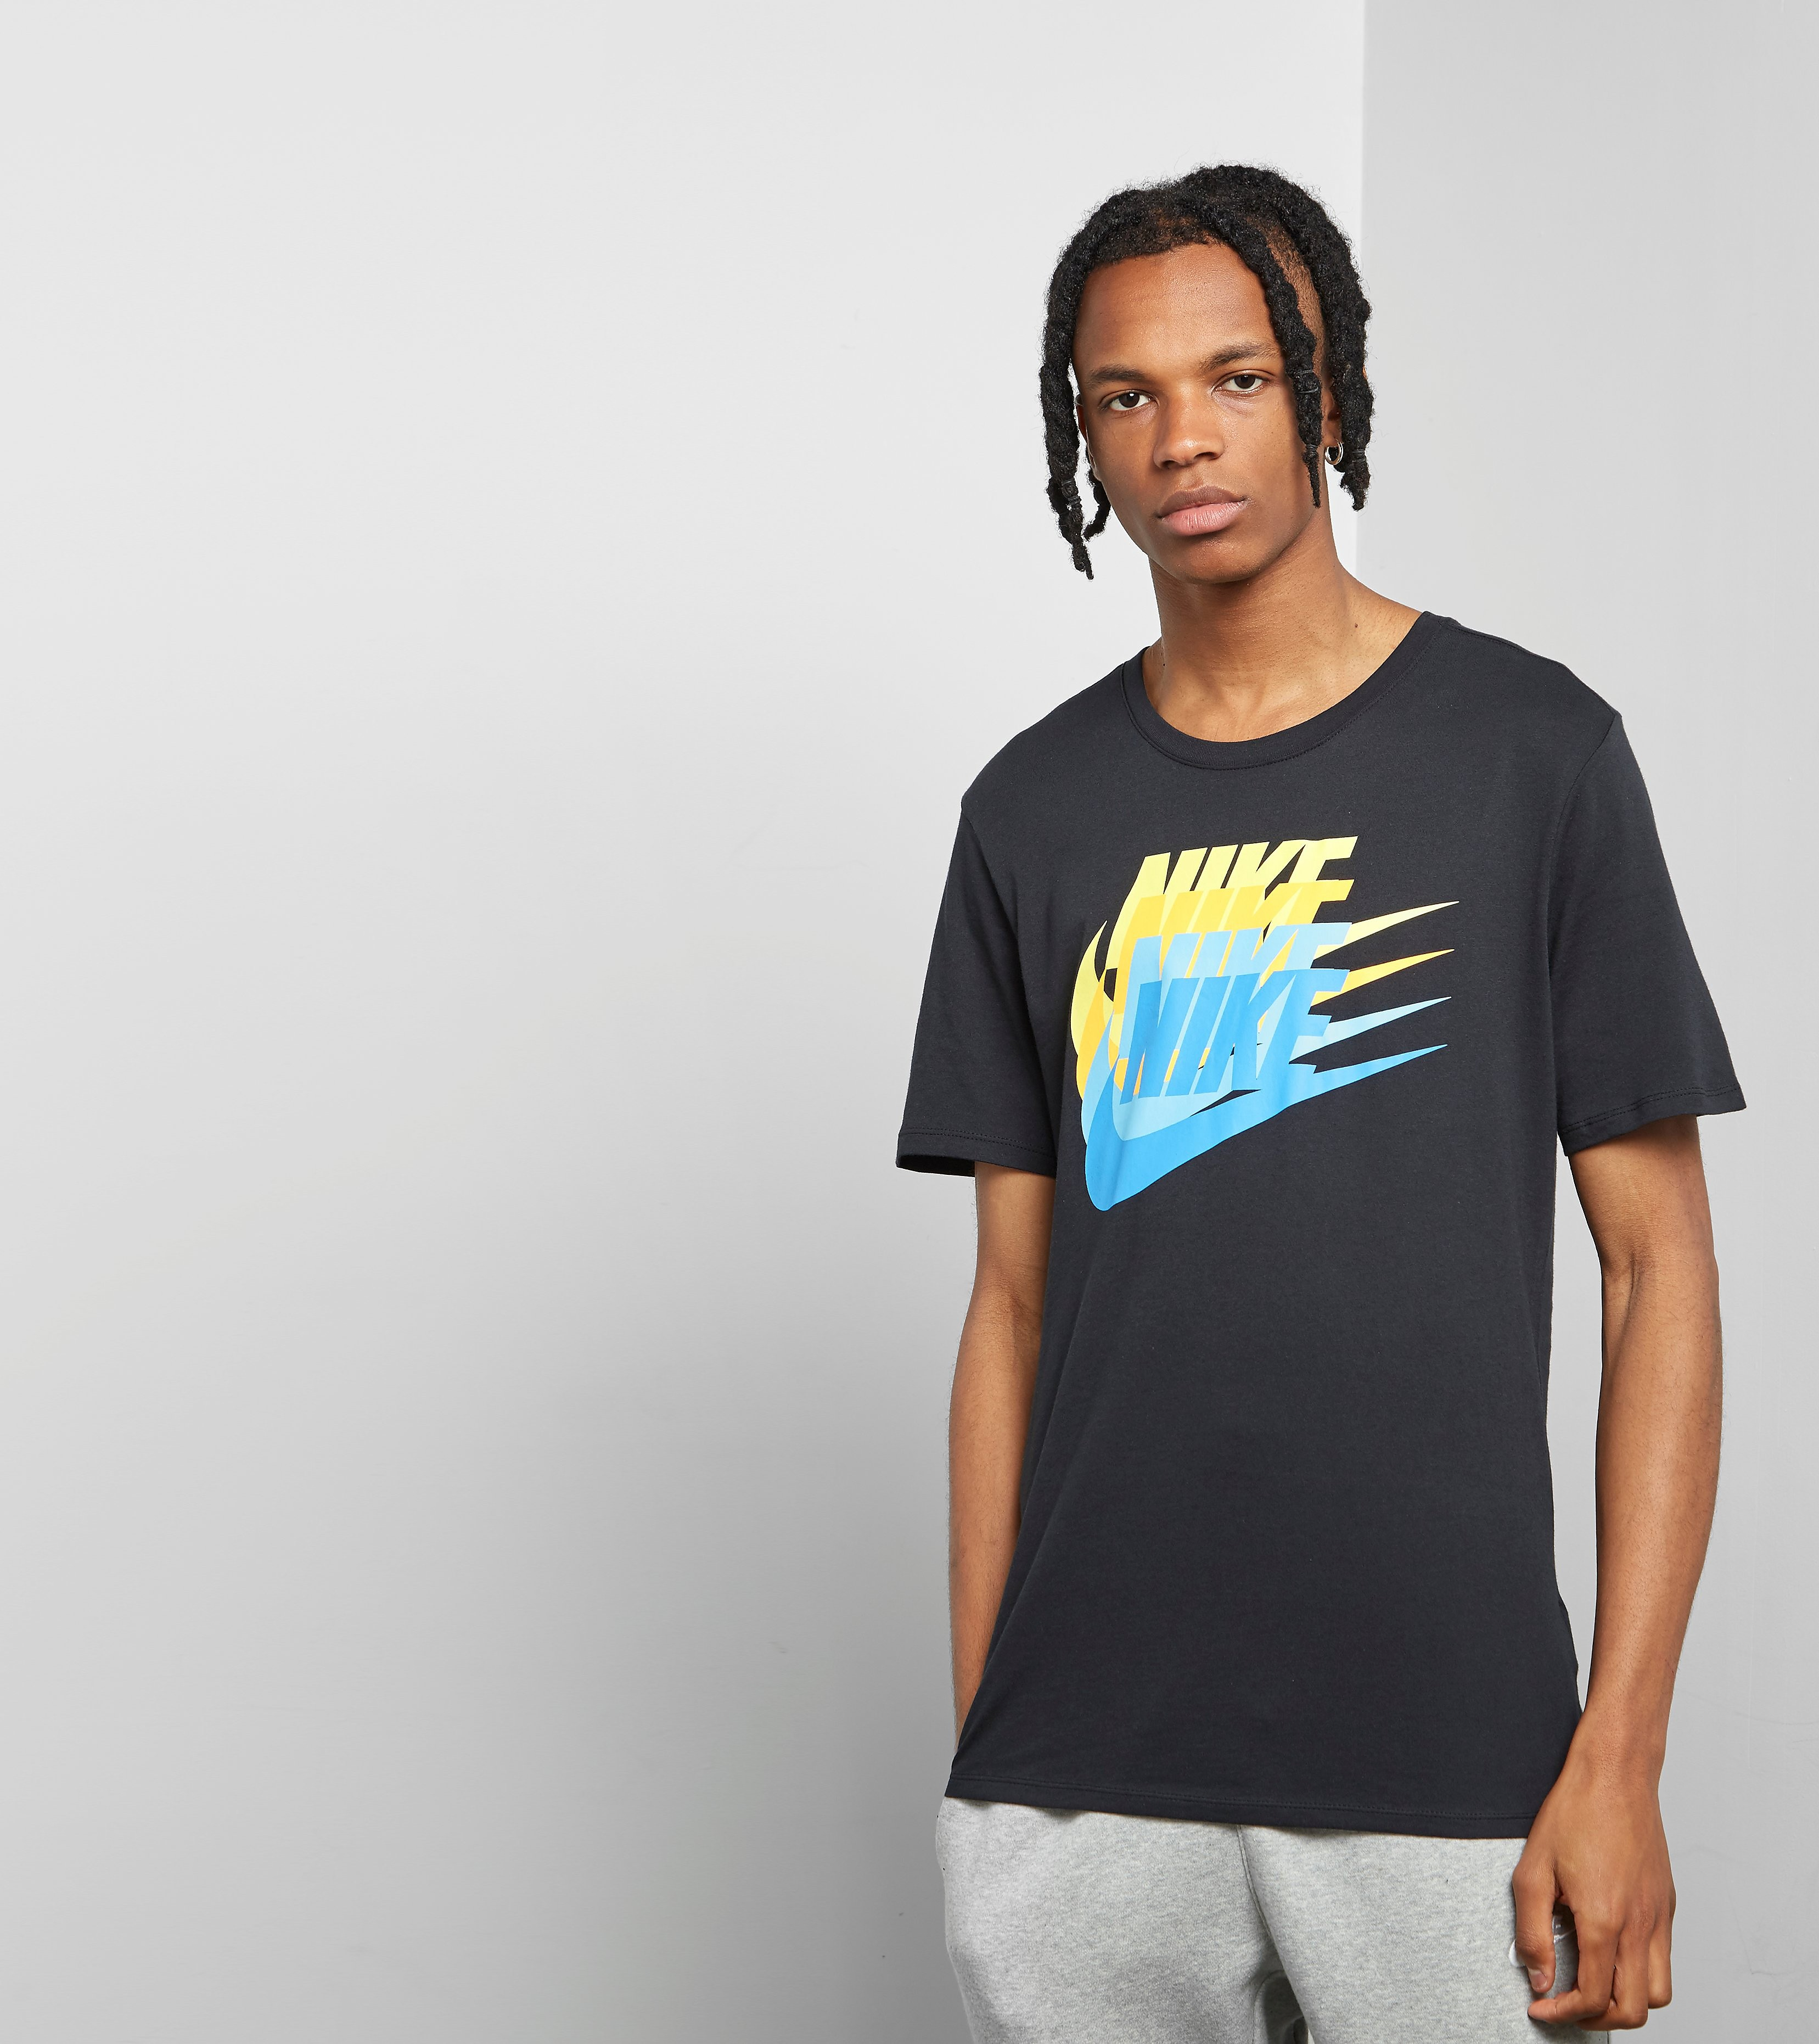 Nike Concept 1 T-Shirt